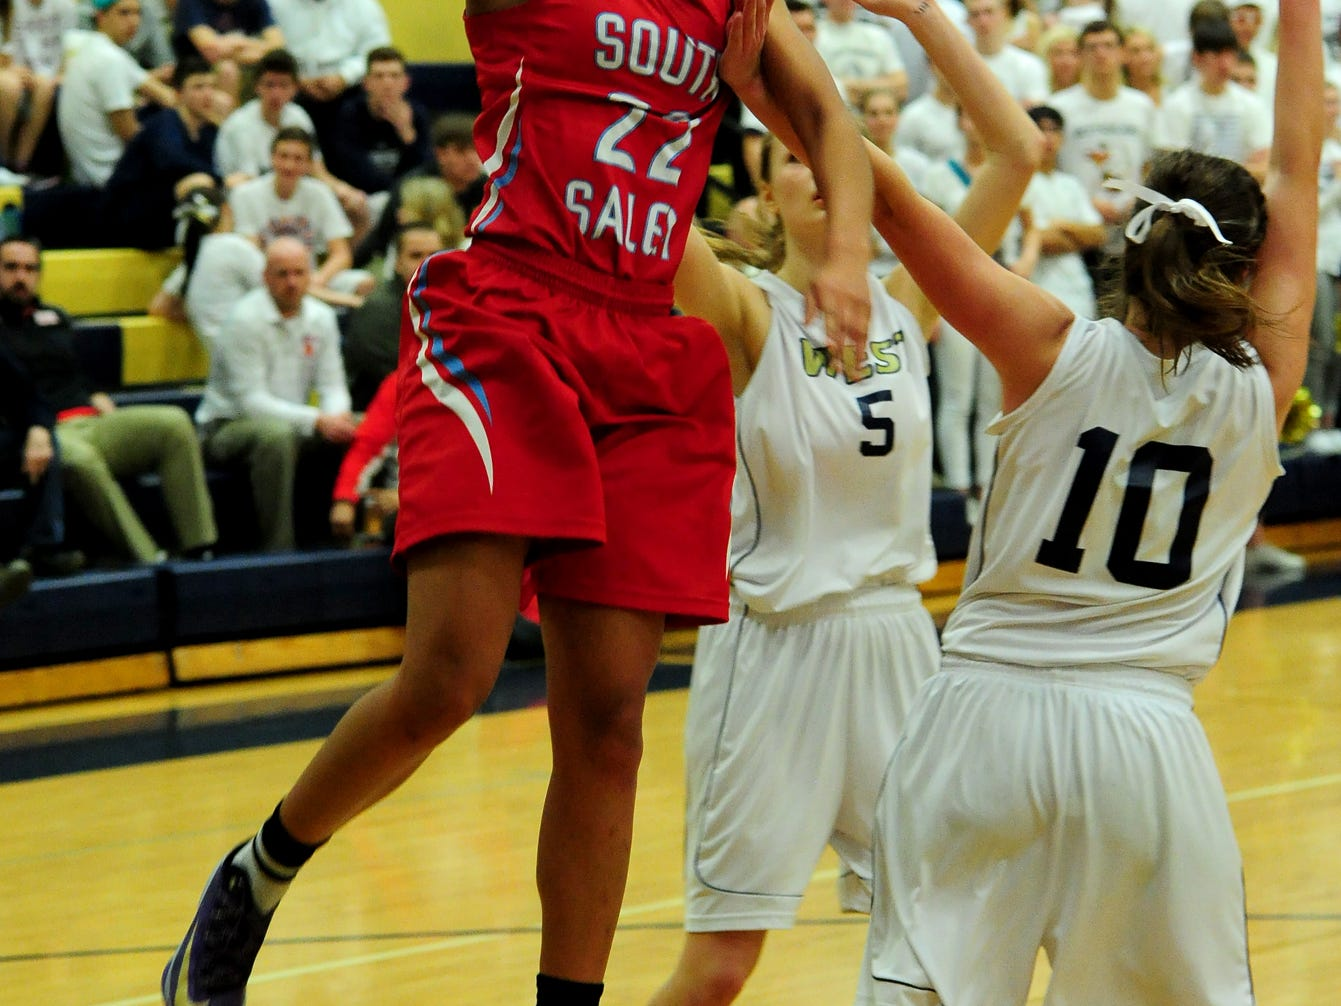 South Salem guard Evina Westbrook drives in for a lay up against West Albany during a Greater Valley Conference game on Tuesday, February 24, 2015, in Albany.